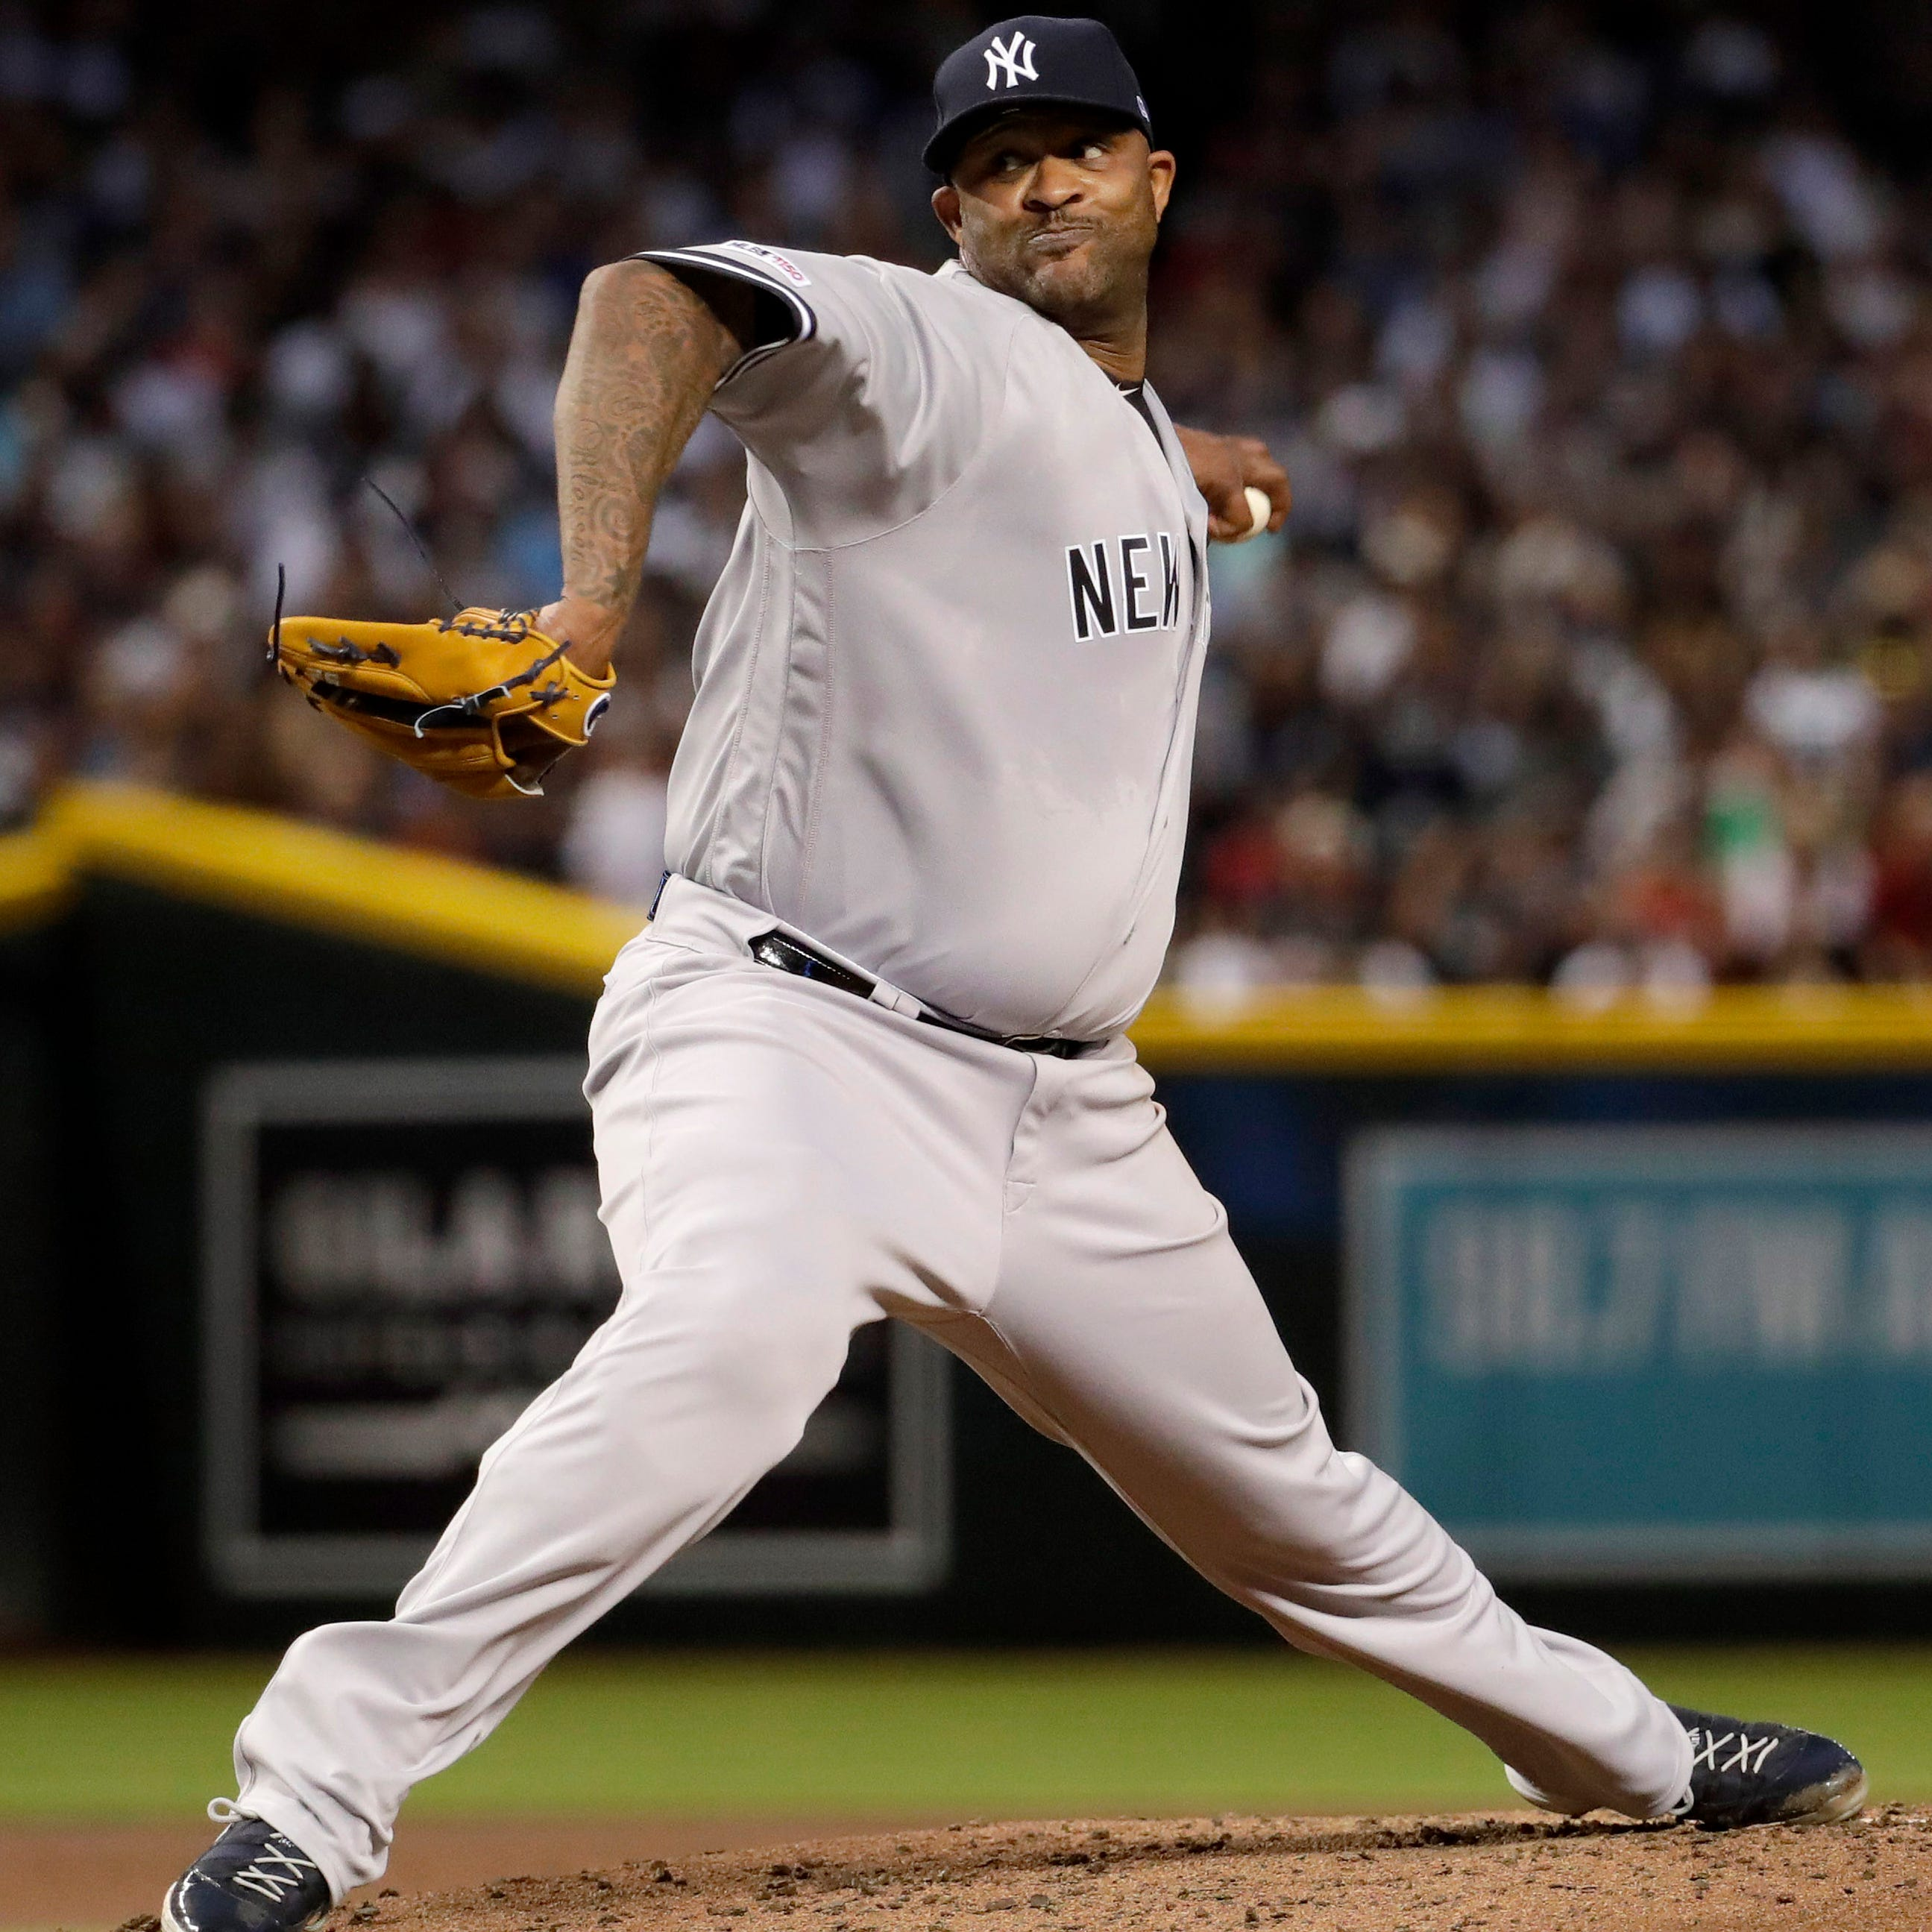 Yankees' CC Sabathia reaches 3,000 strikeouts, and next stop could be Cooperstown